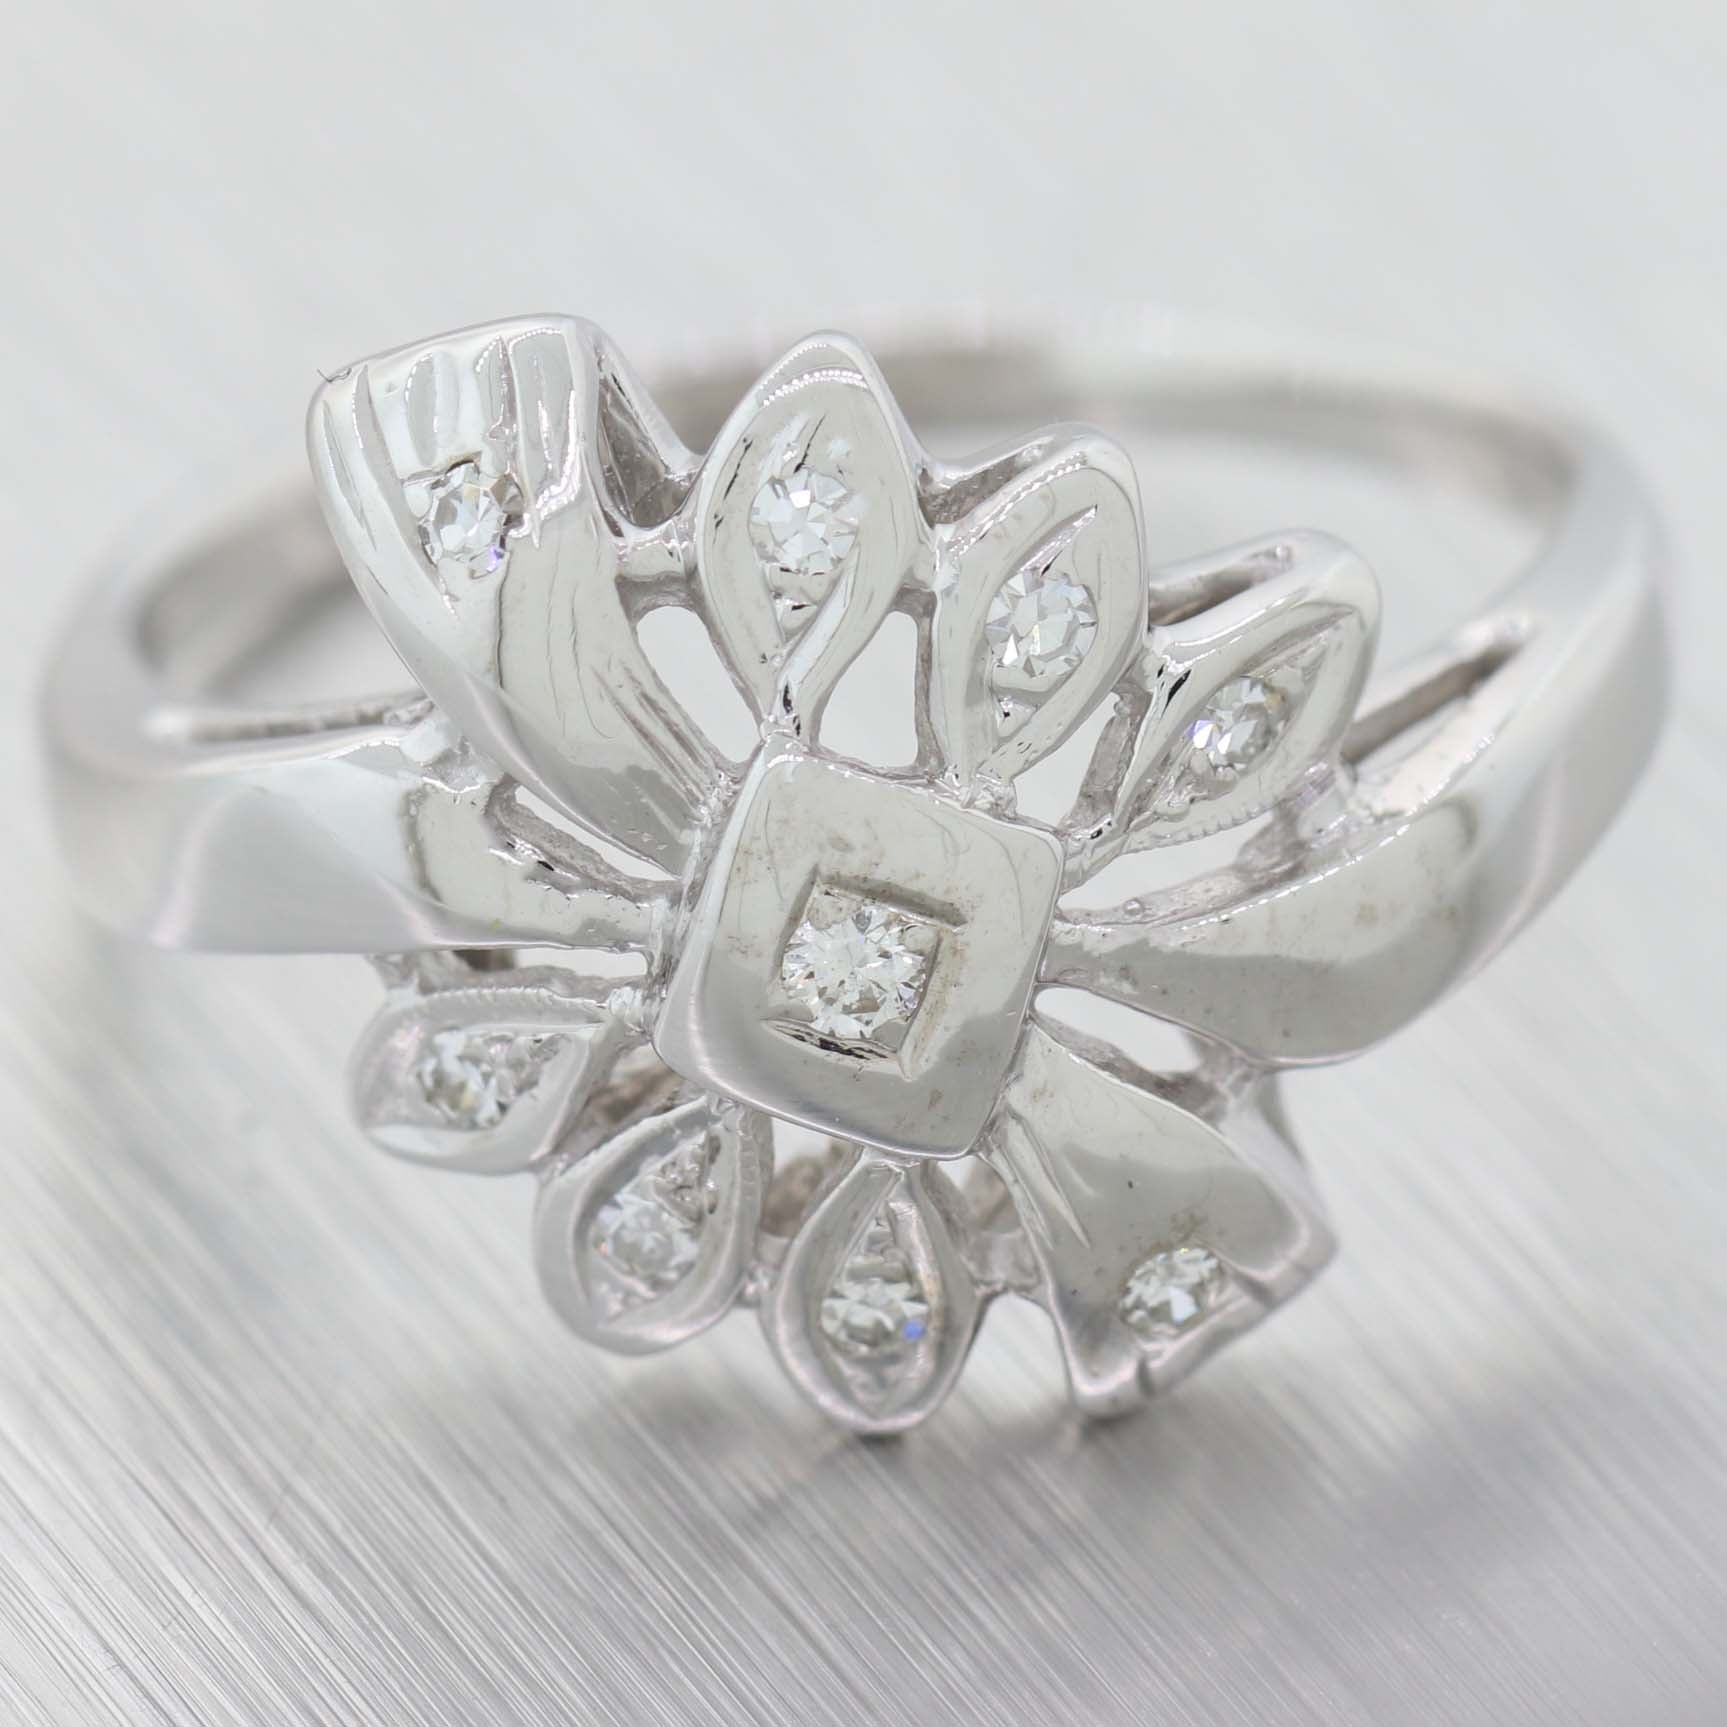 1930's Antique Art Deco 14K White Gold 0.20ctw Diamond Flower Ring C9